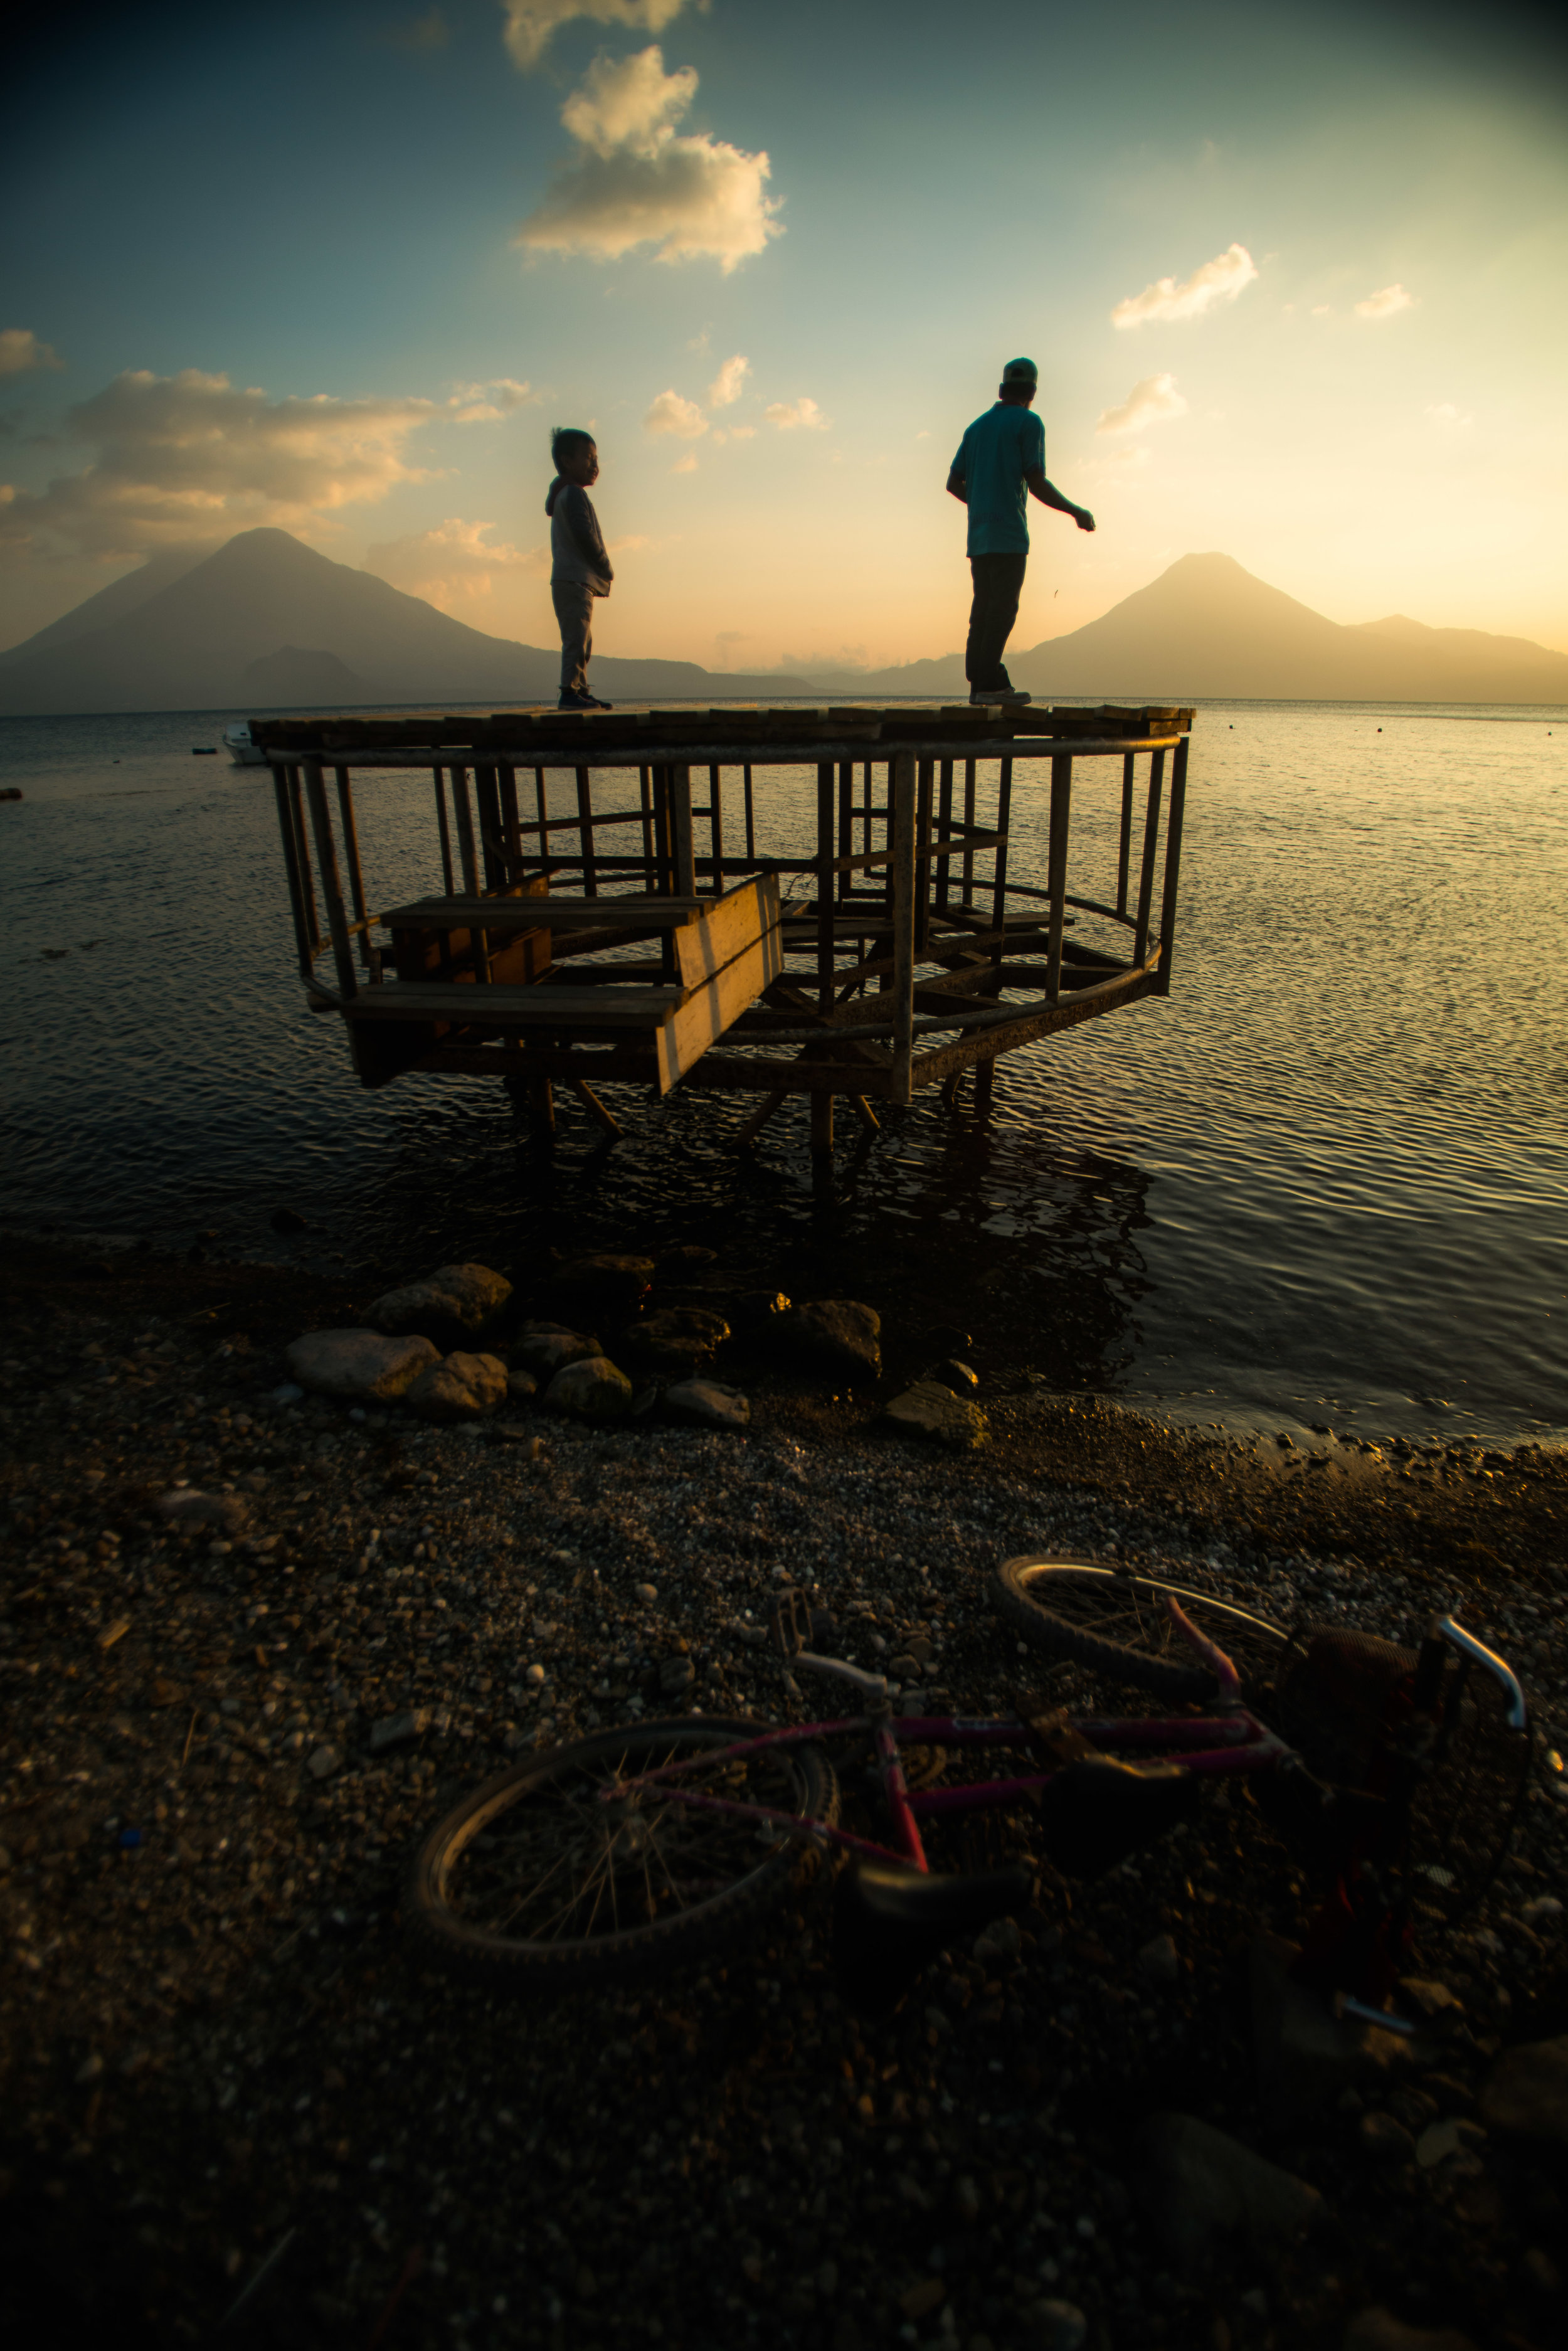 Local father and son fishing during sunset on Lake Atitlan from Panajachel